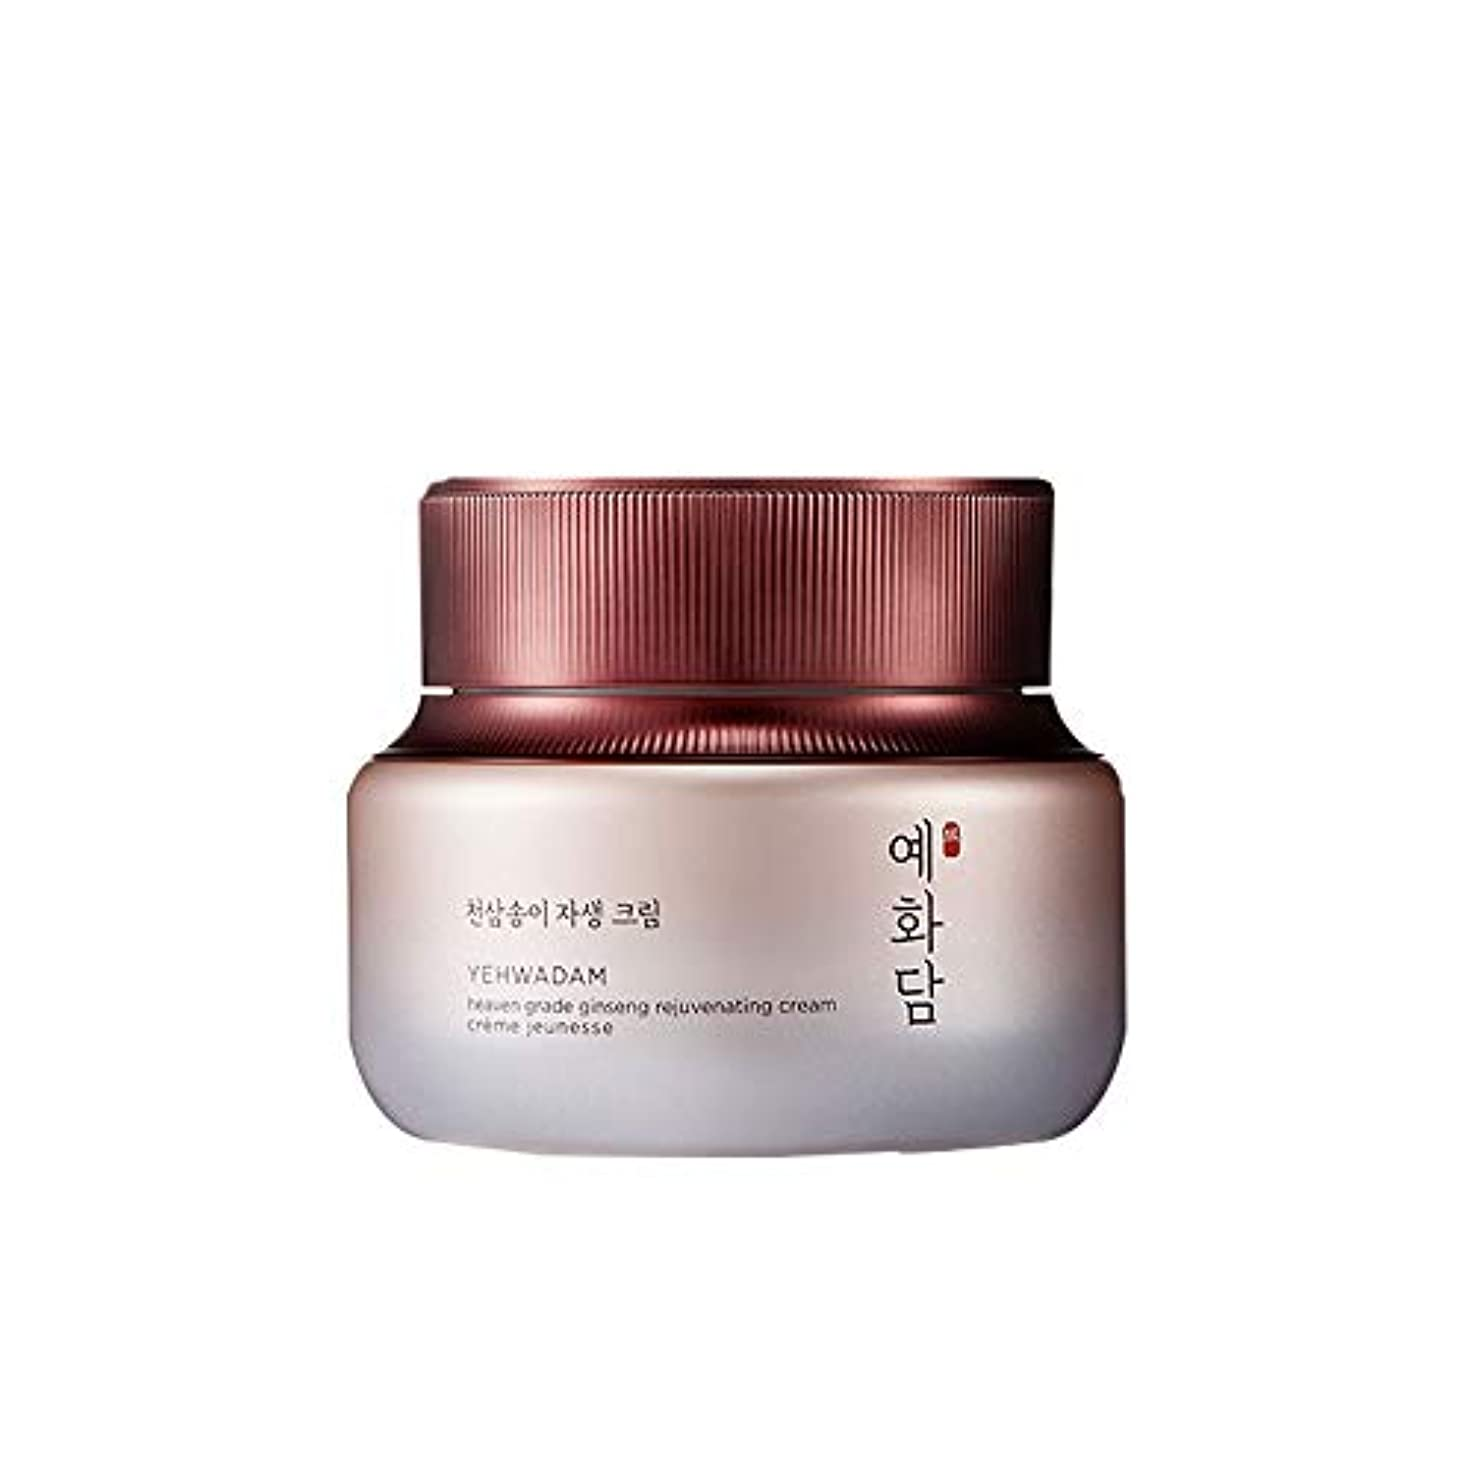 きつく読む超越する[ザフェイスショップ]The Faceshop YEHWADAM天参松栮自生クリーム 50ml The Faceshop YEHWADAM Heaven Grade Ginseng Regenerating Cream...